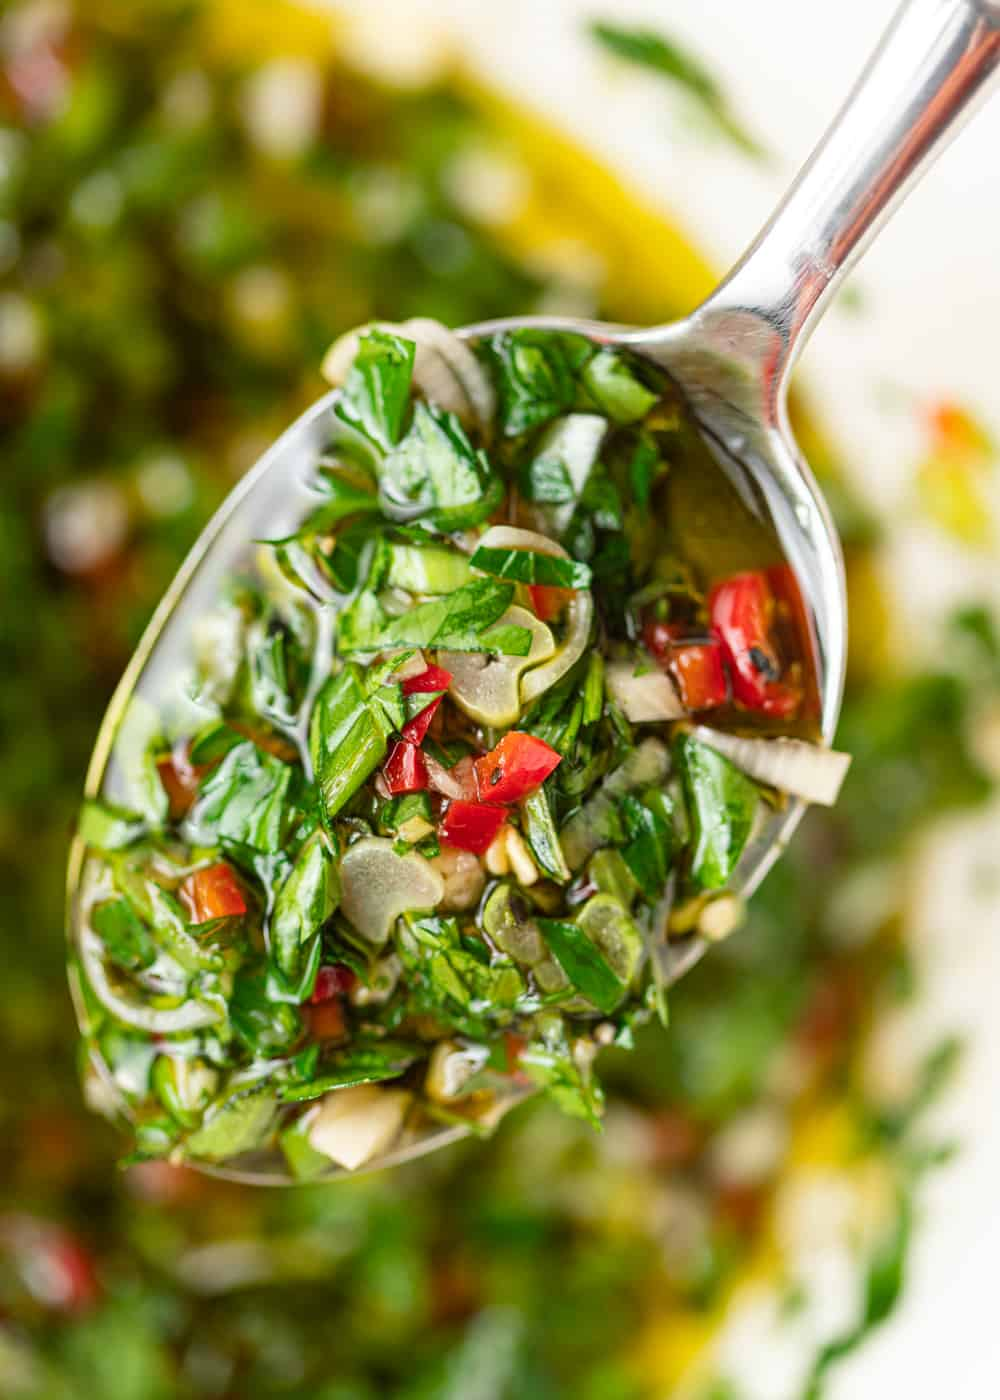 spoon with chopped garlic, red chile pepper and herbs in oil